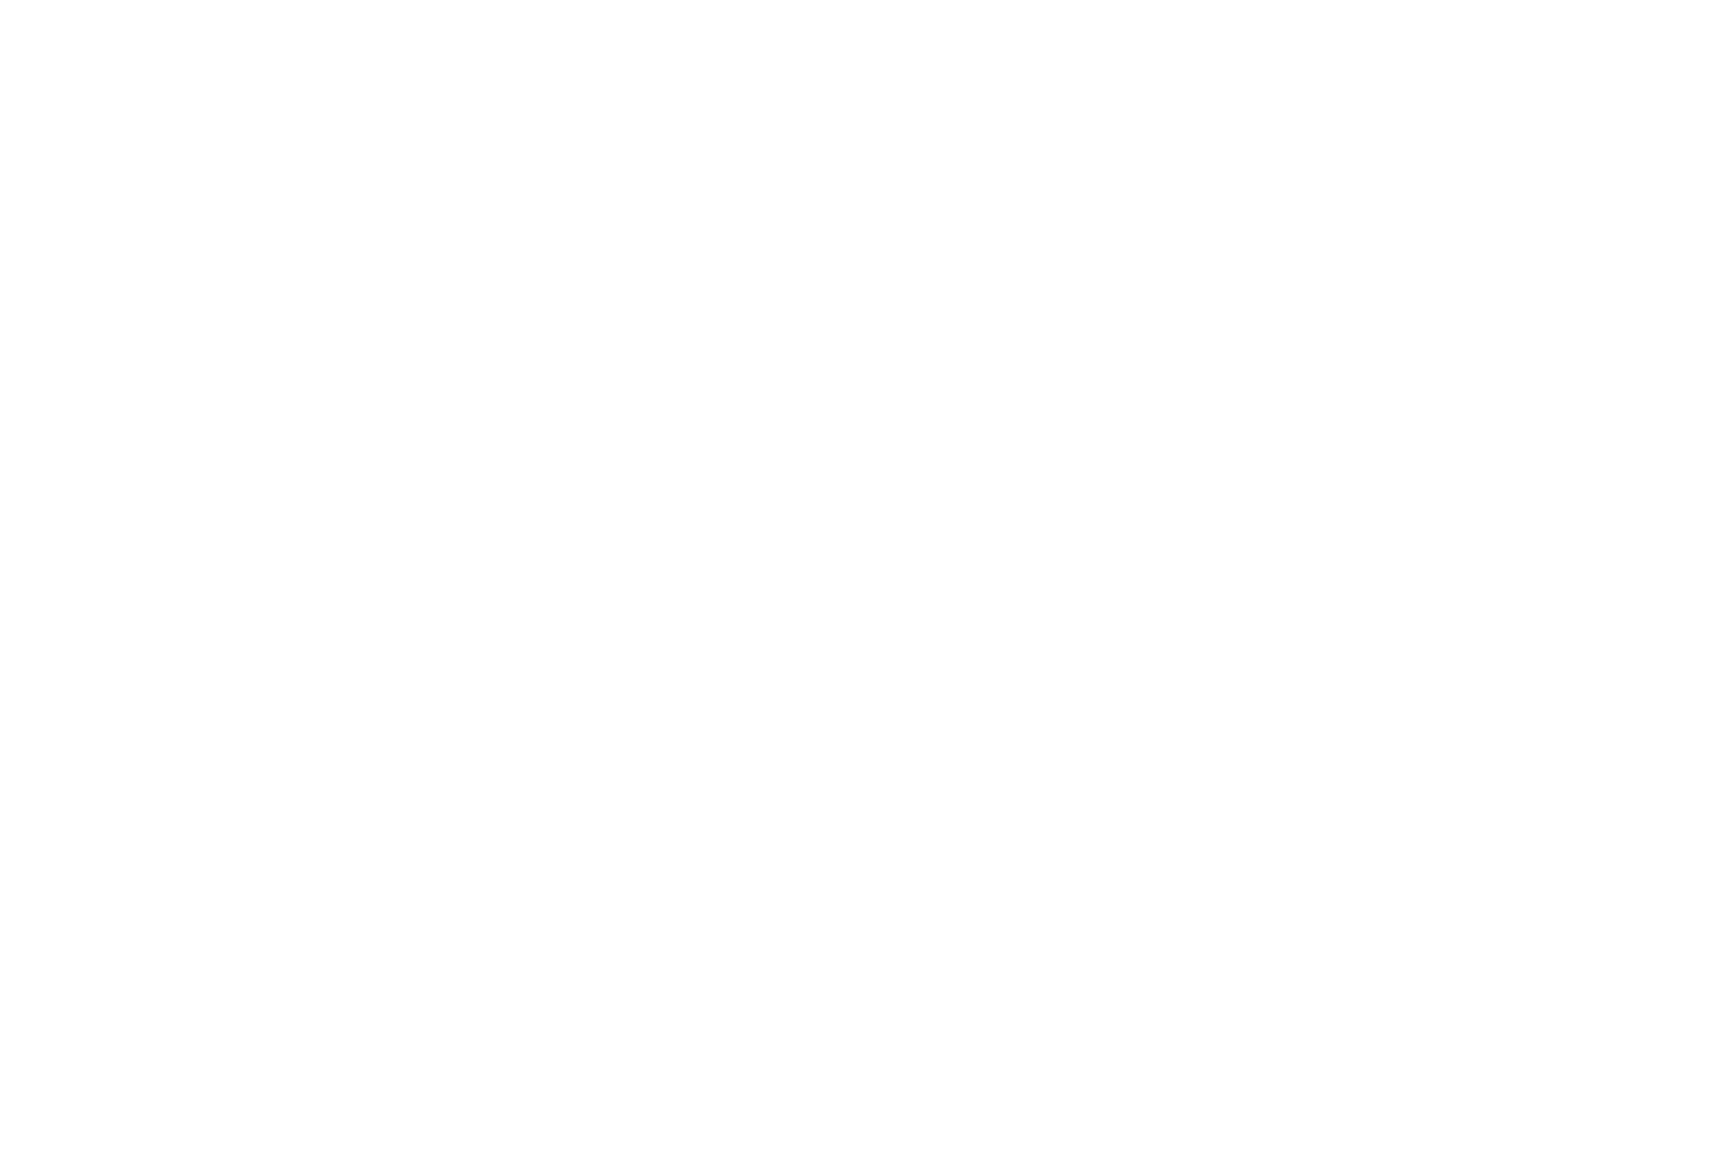 OFFICIAL-SELECTION-It-Came-From-the-Sky-Film-Festival-2020